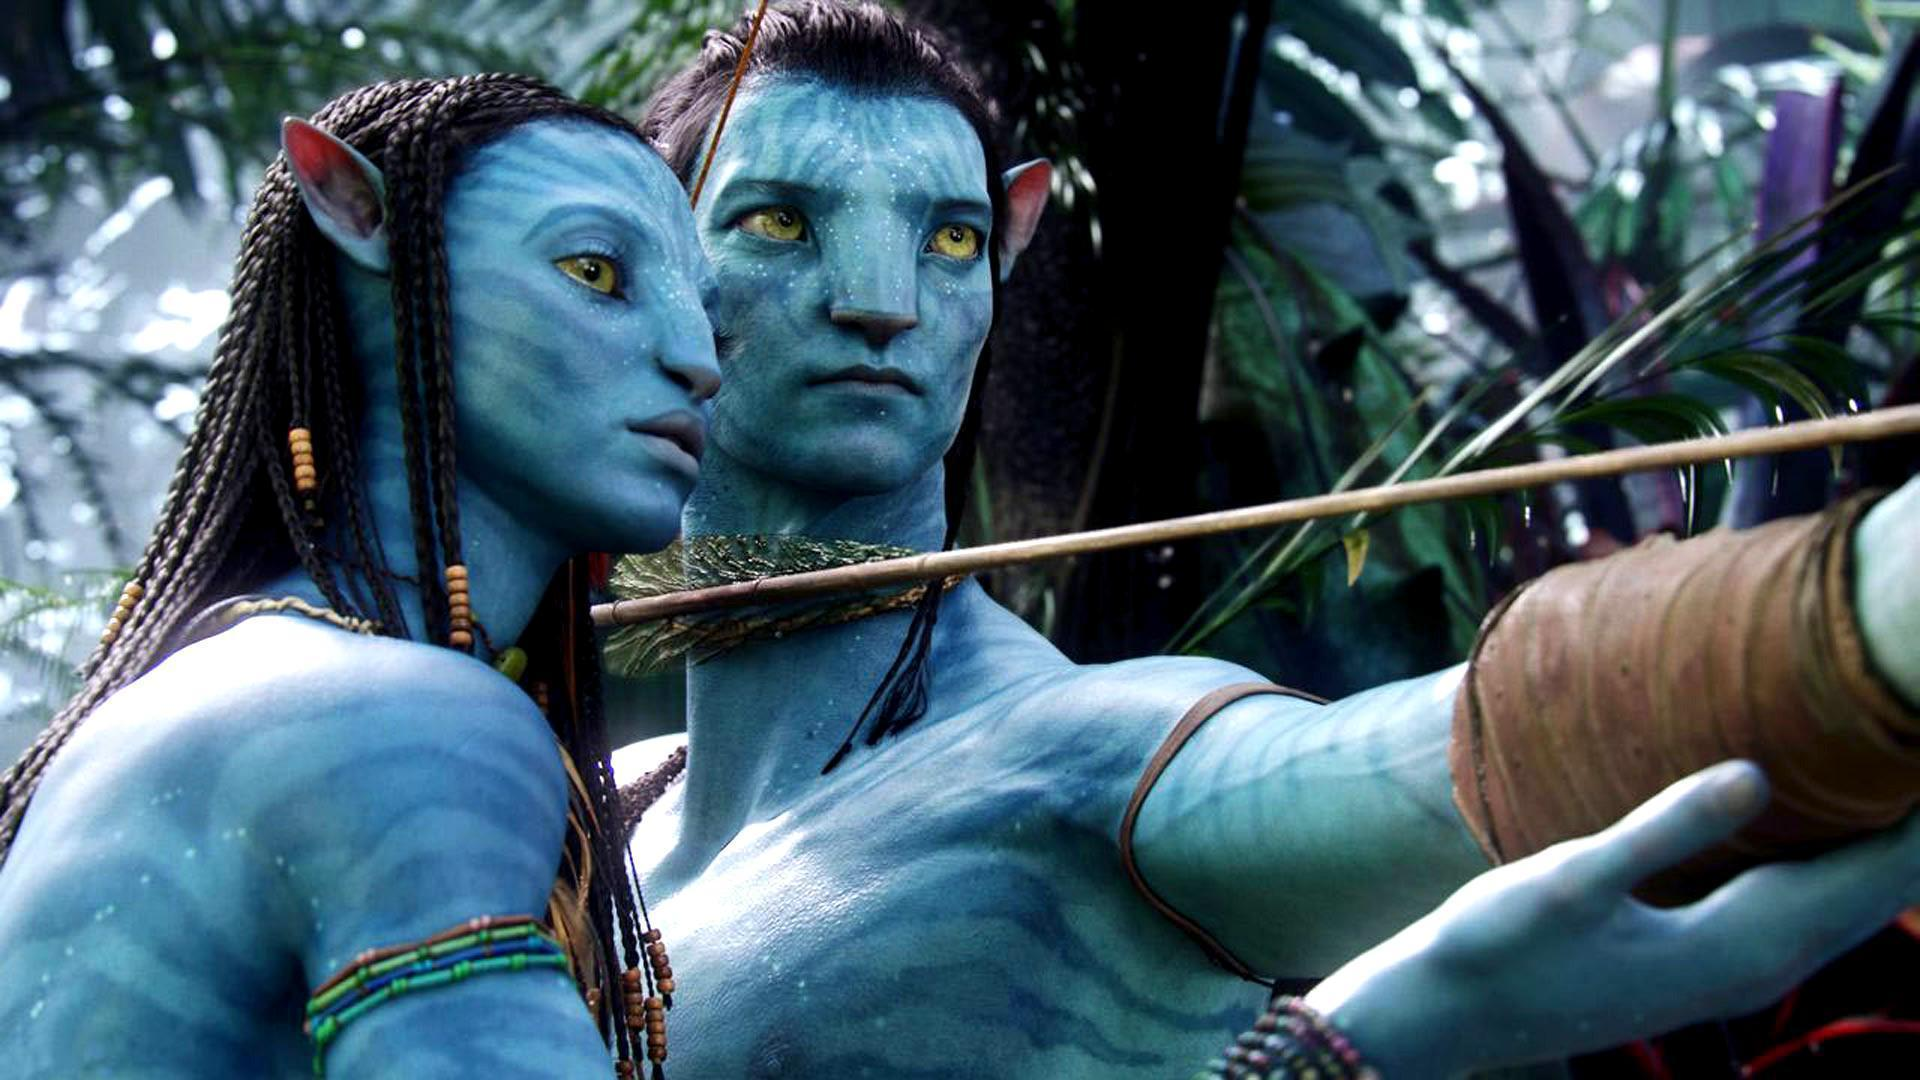 avatar 2: filming to start now that avatar 5 has finished being